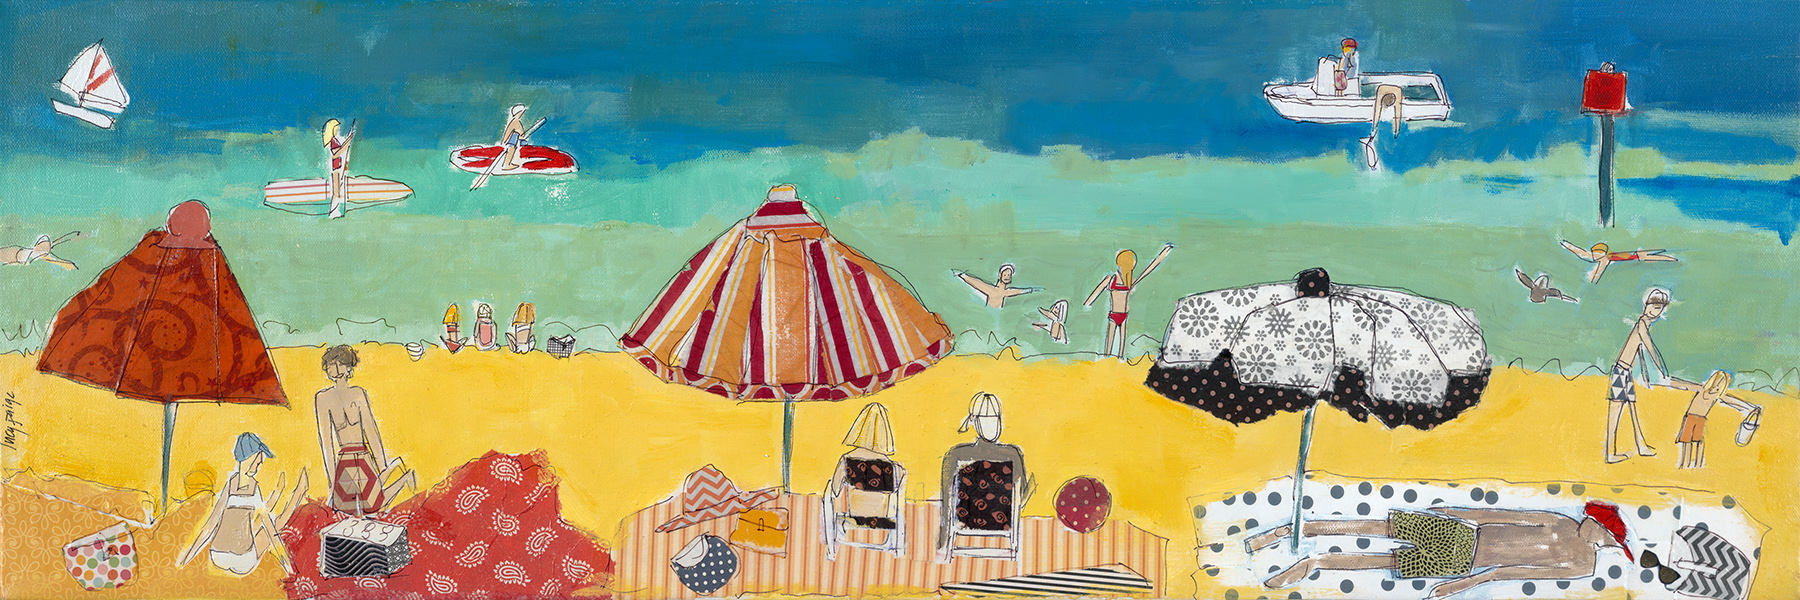 lucy paige artist key west beach day series collage Afternoon at Smathers Beach .jpg